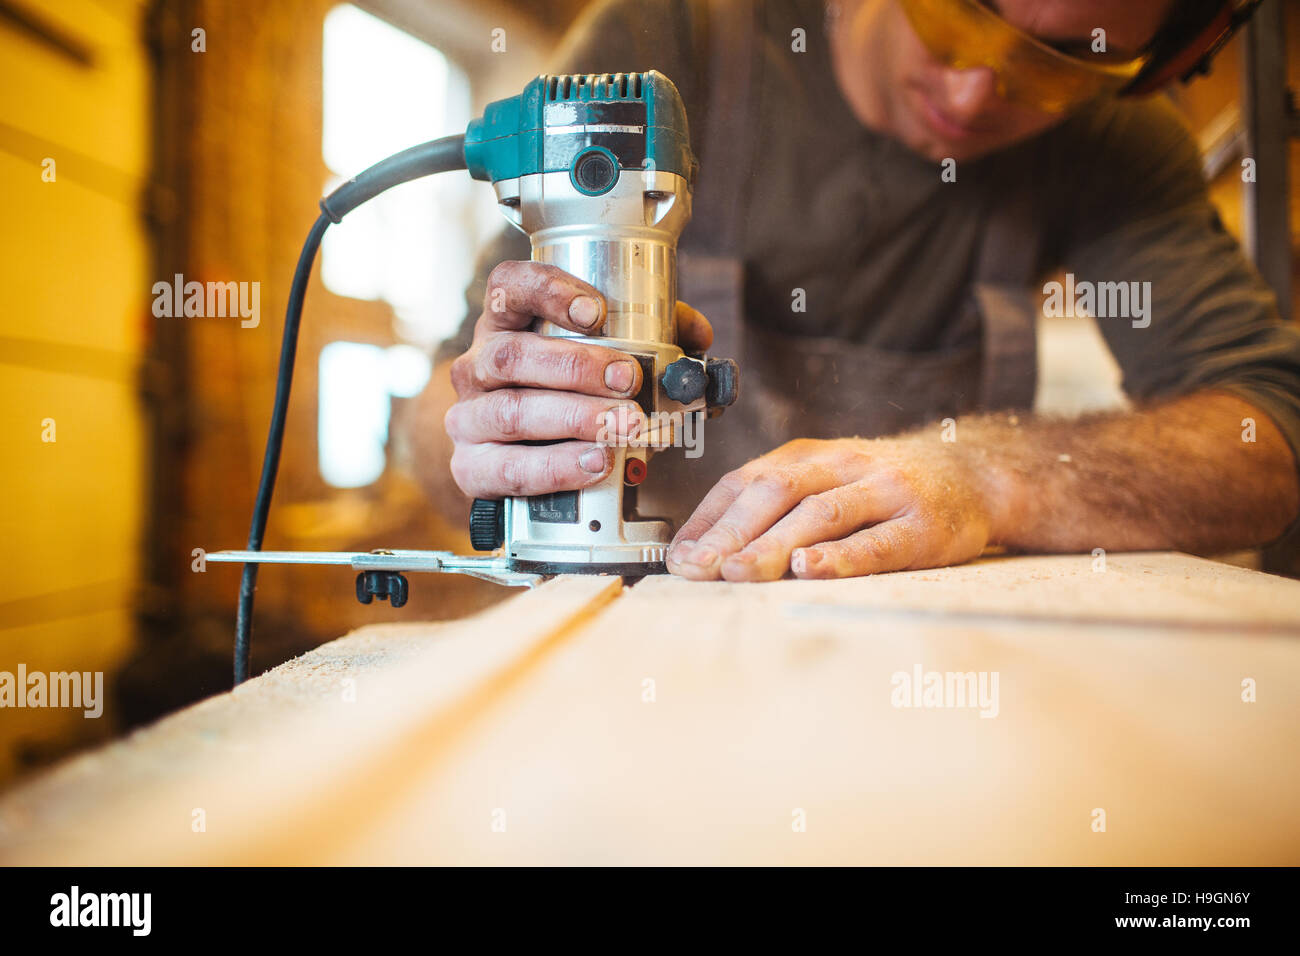 Skilled handyman cutting wooden board with electric wood-router - Stock Image